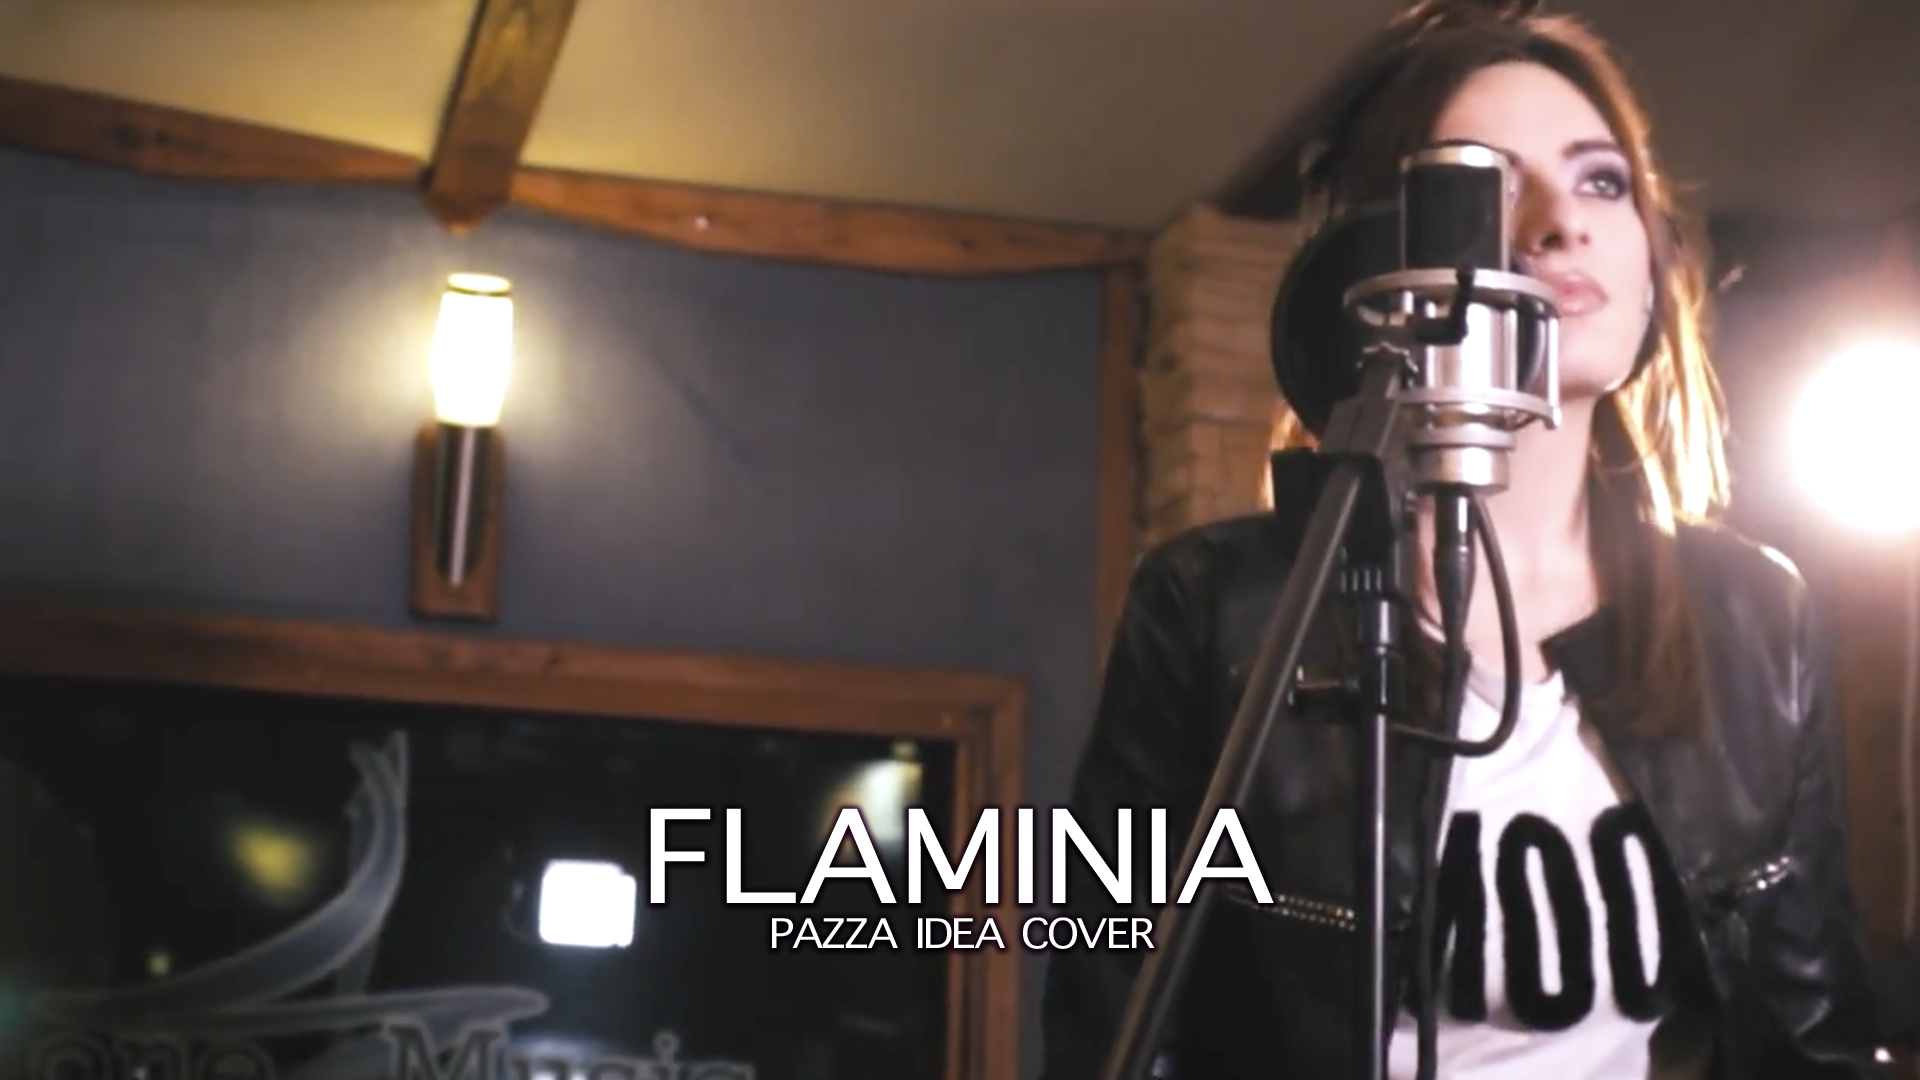 Copertina Video Flaminia Pazza Idea